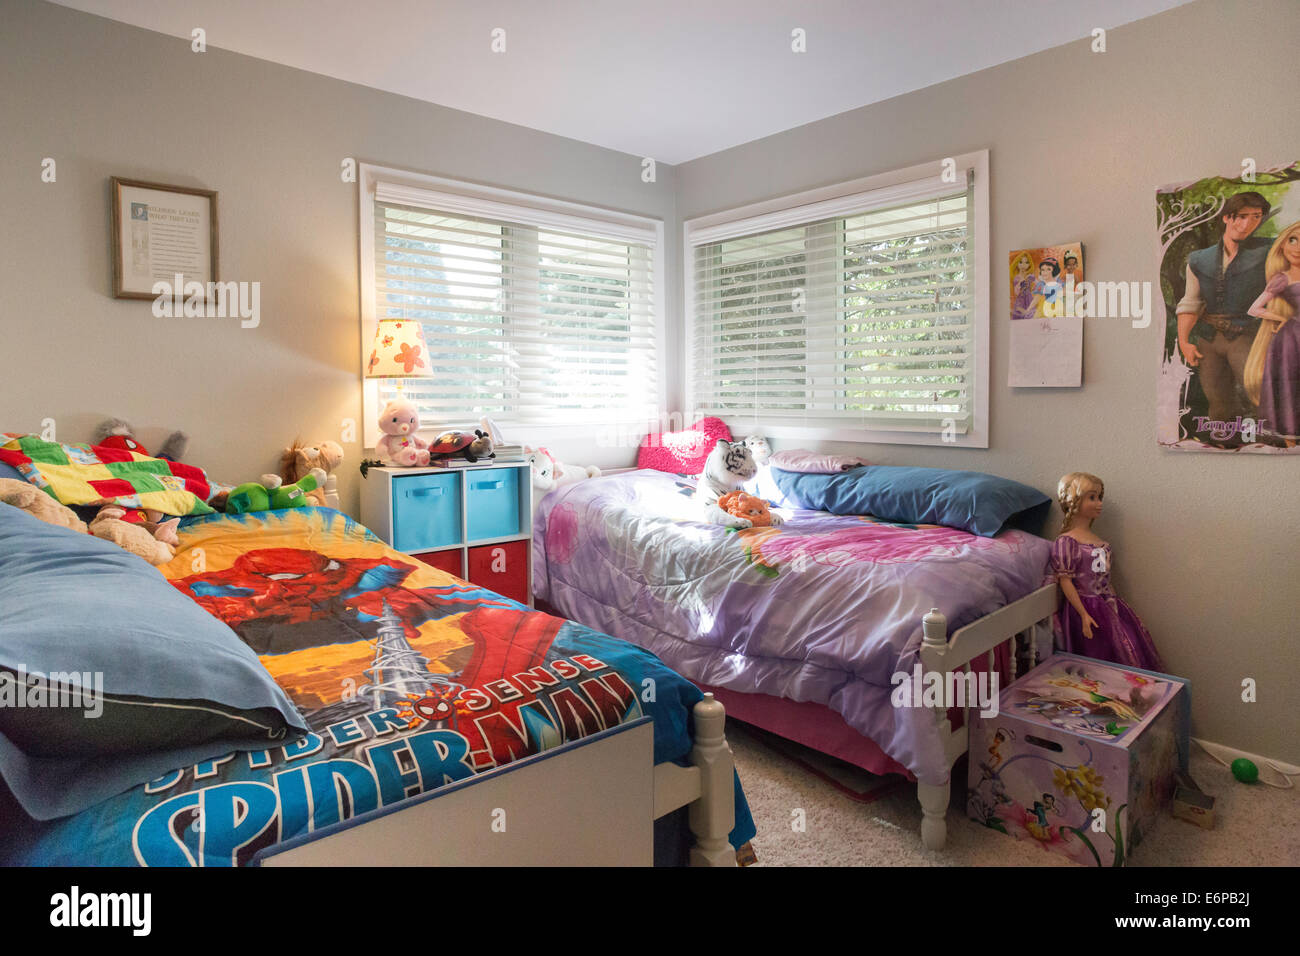 Brother And Sister Bedroom Usa Stock Photo Royalty Free Image 73021050 Alamy